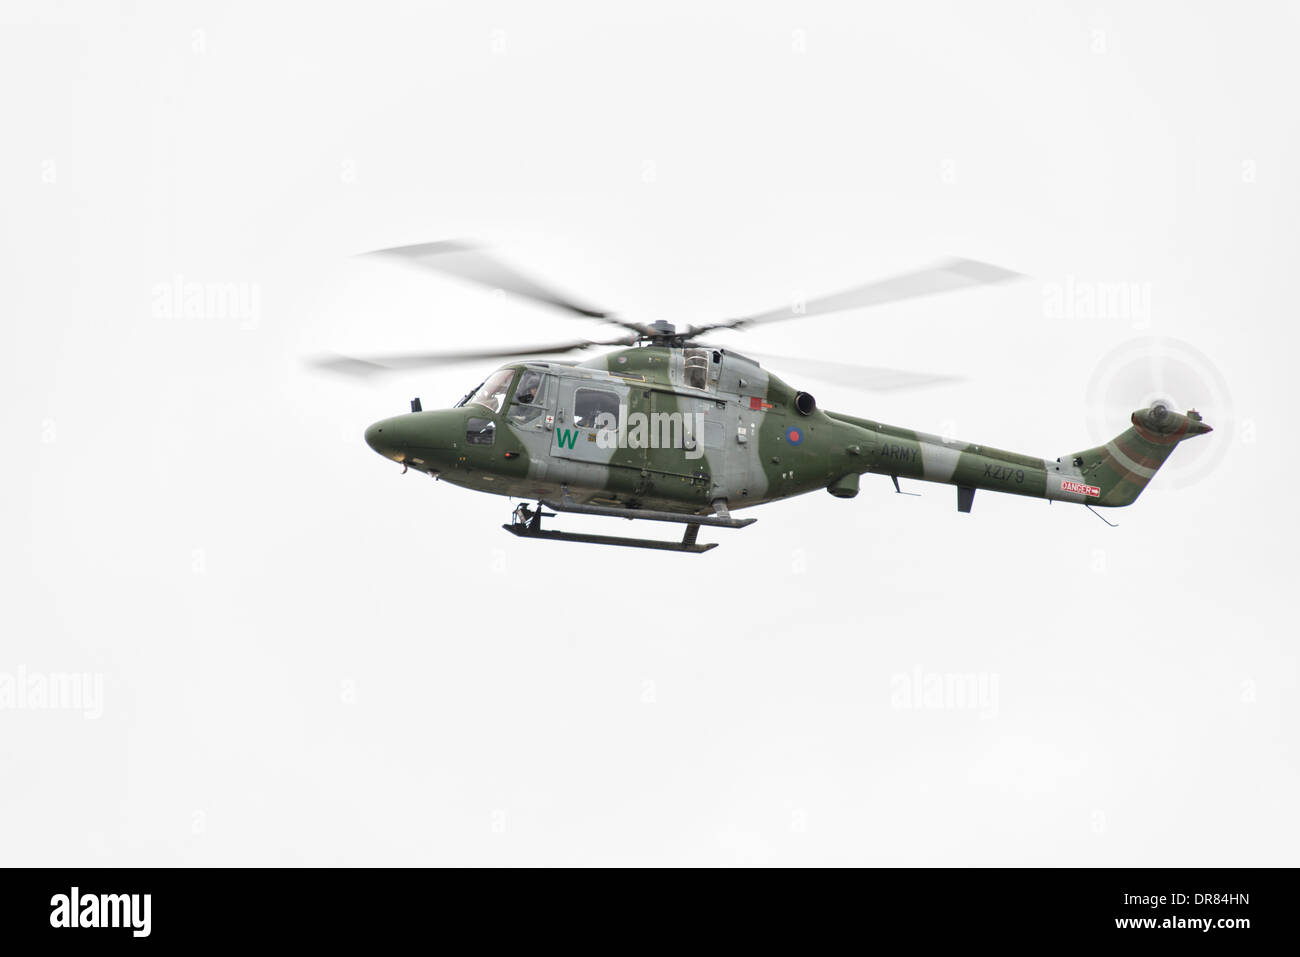 British Army Helicopter a Westland Lynx AH7 from 671 Squadron based at Middle Wallop in Hampshire displays at the 2013 RIAT - Stock Image